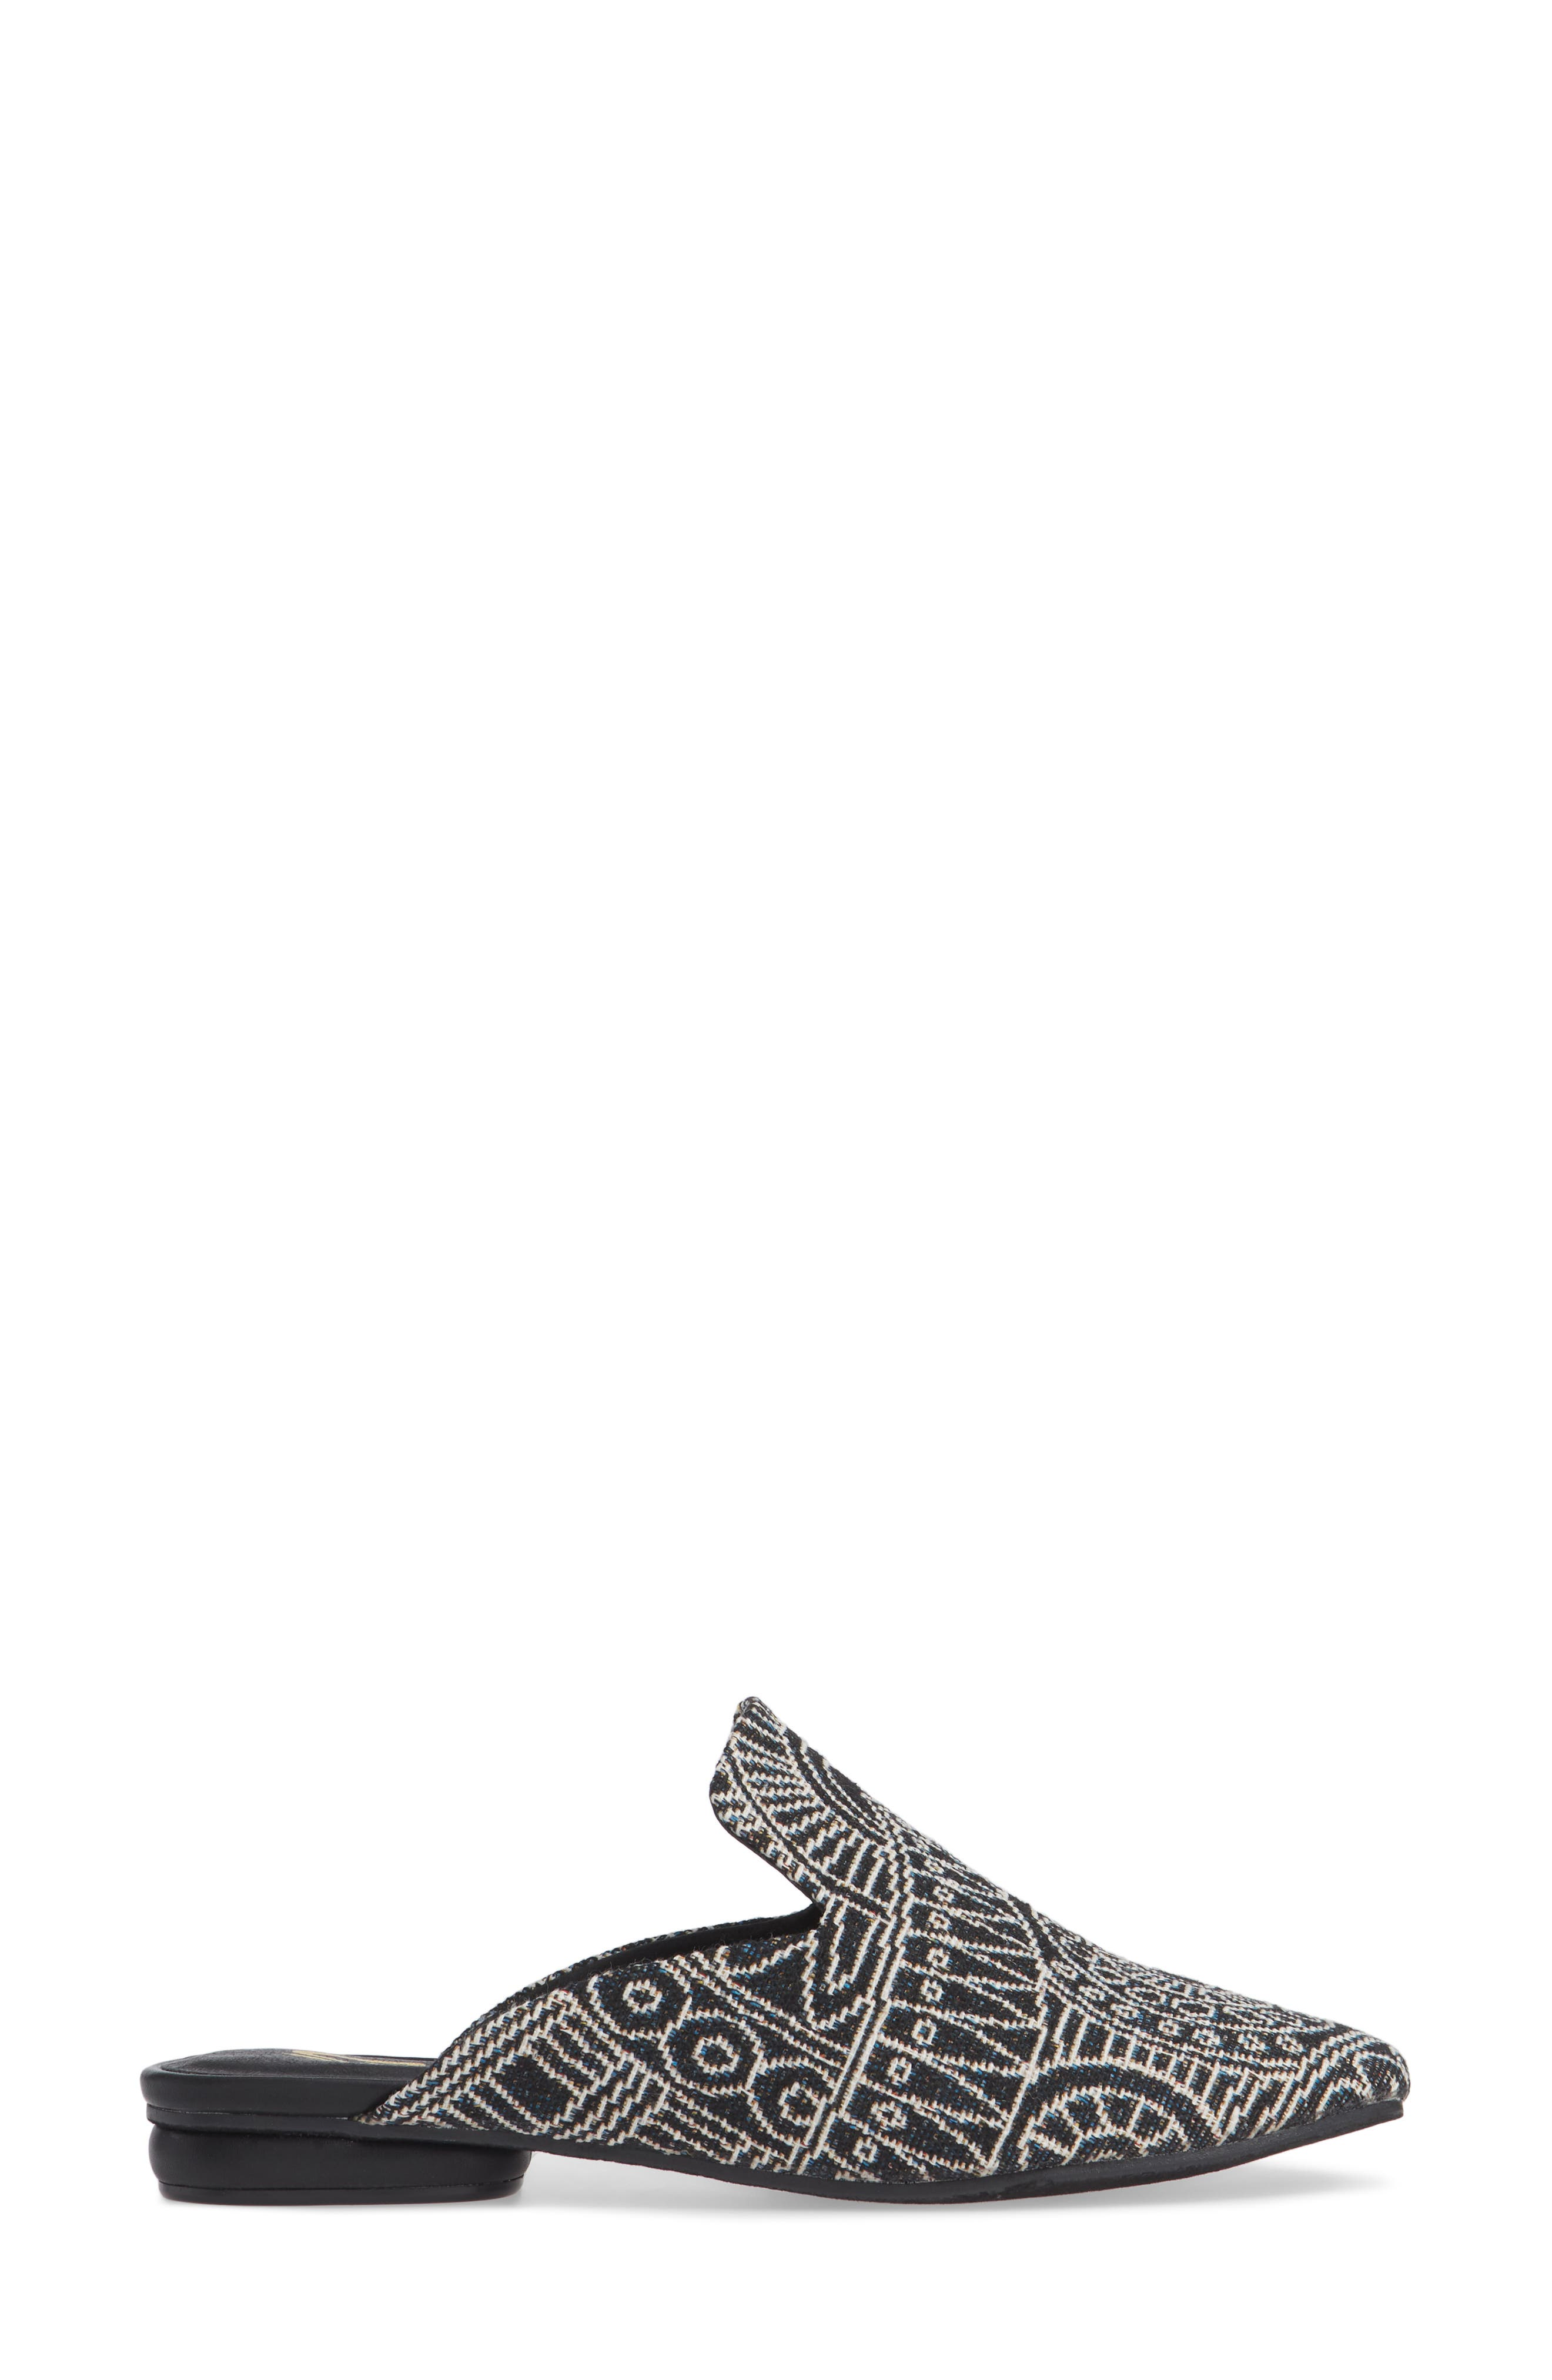 ,                             Brienne Loafer Mule,                             Alternate thumbnail 3, color,                             BLACK/ WHITE FABRIC